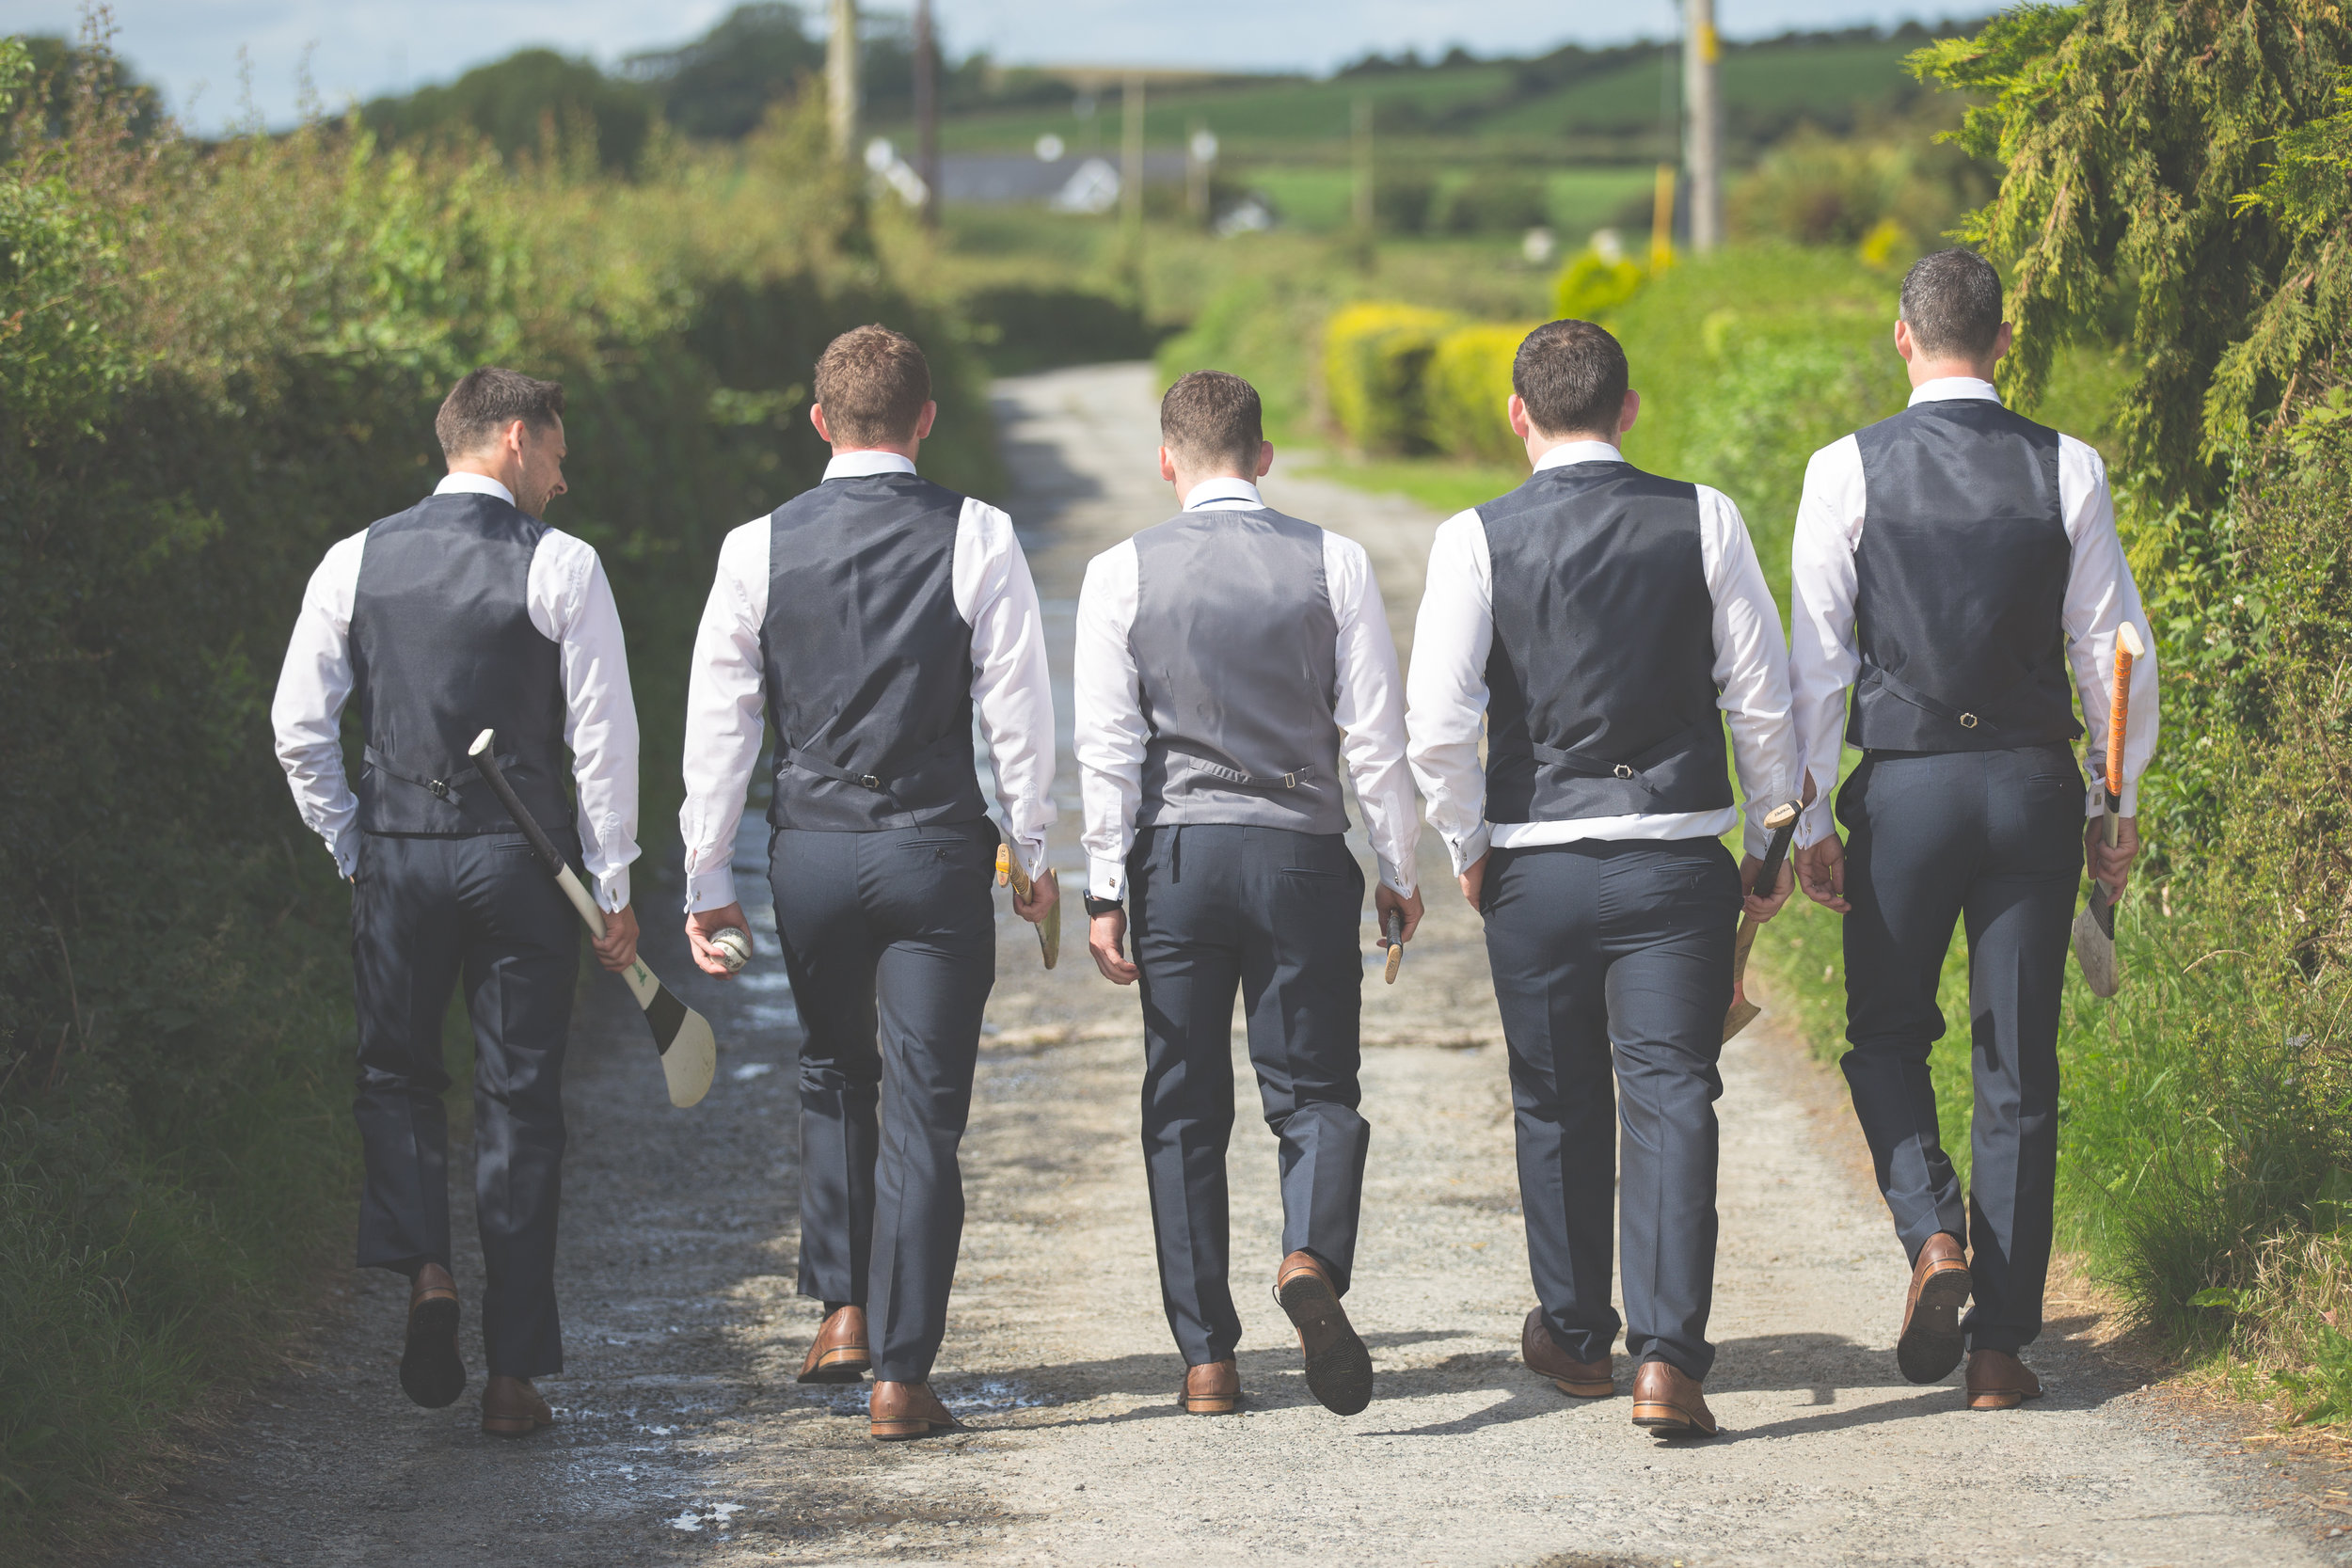 Brian McEwan Wedding Photography | Carol-Anne & Sean | Groom & Groomsmen-51.jpg